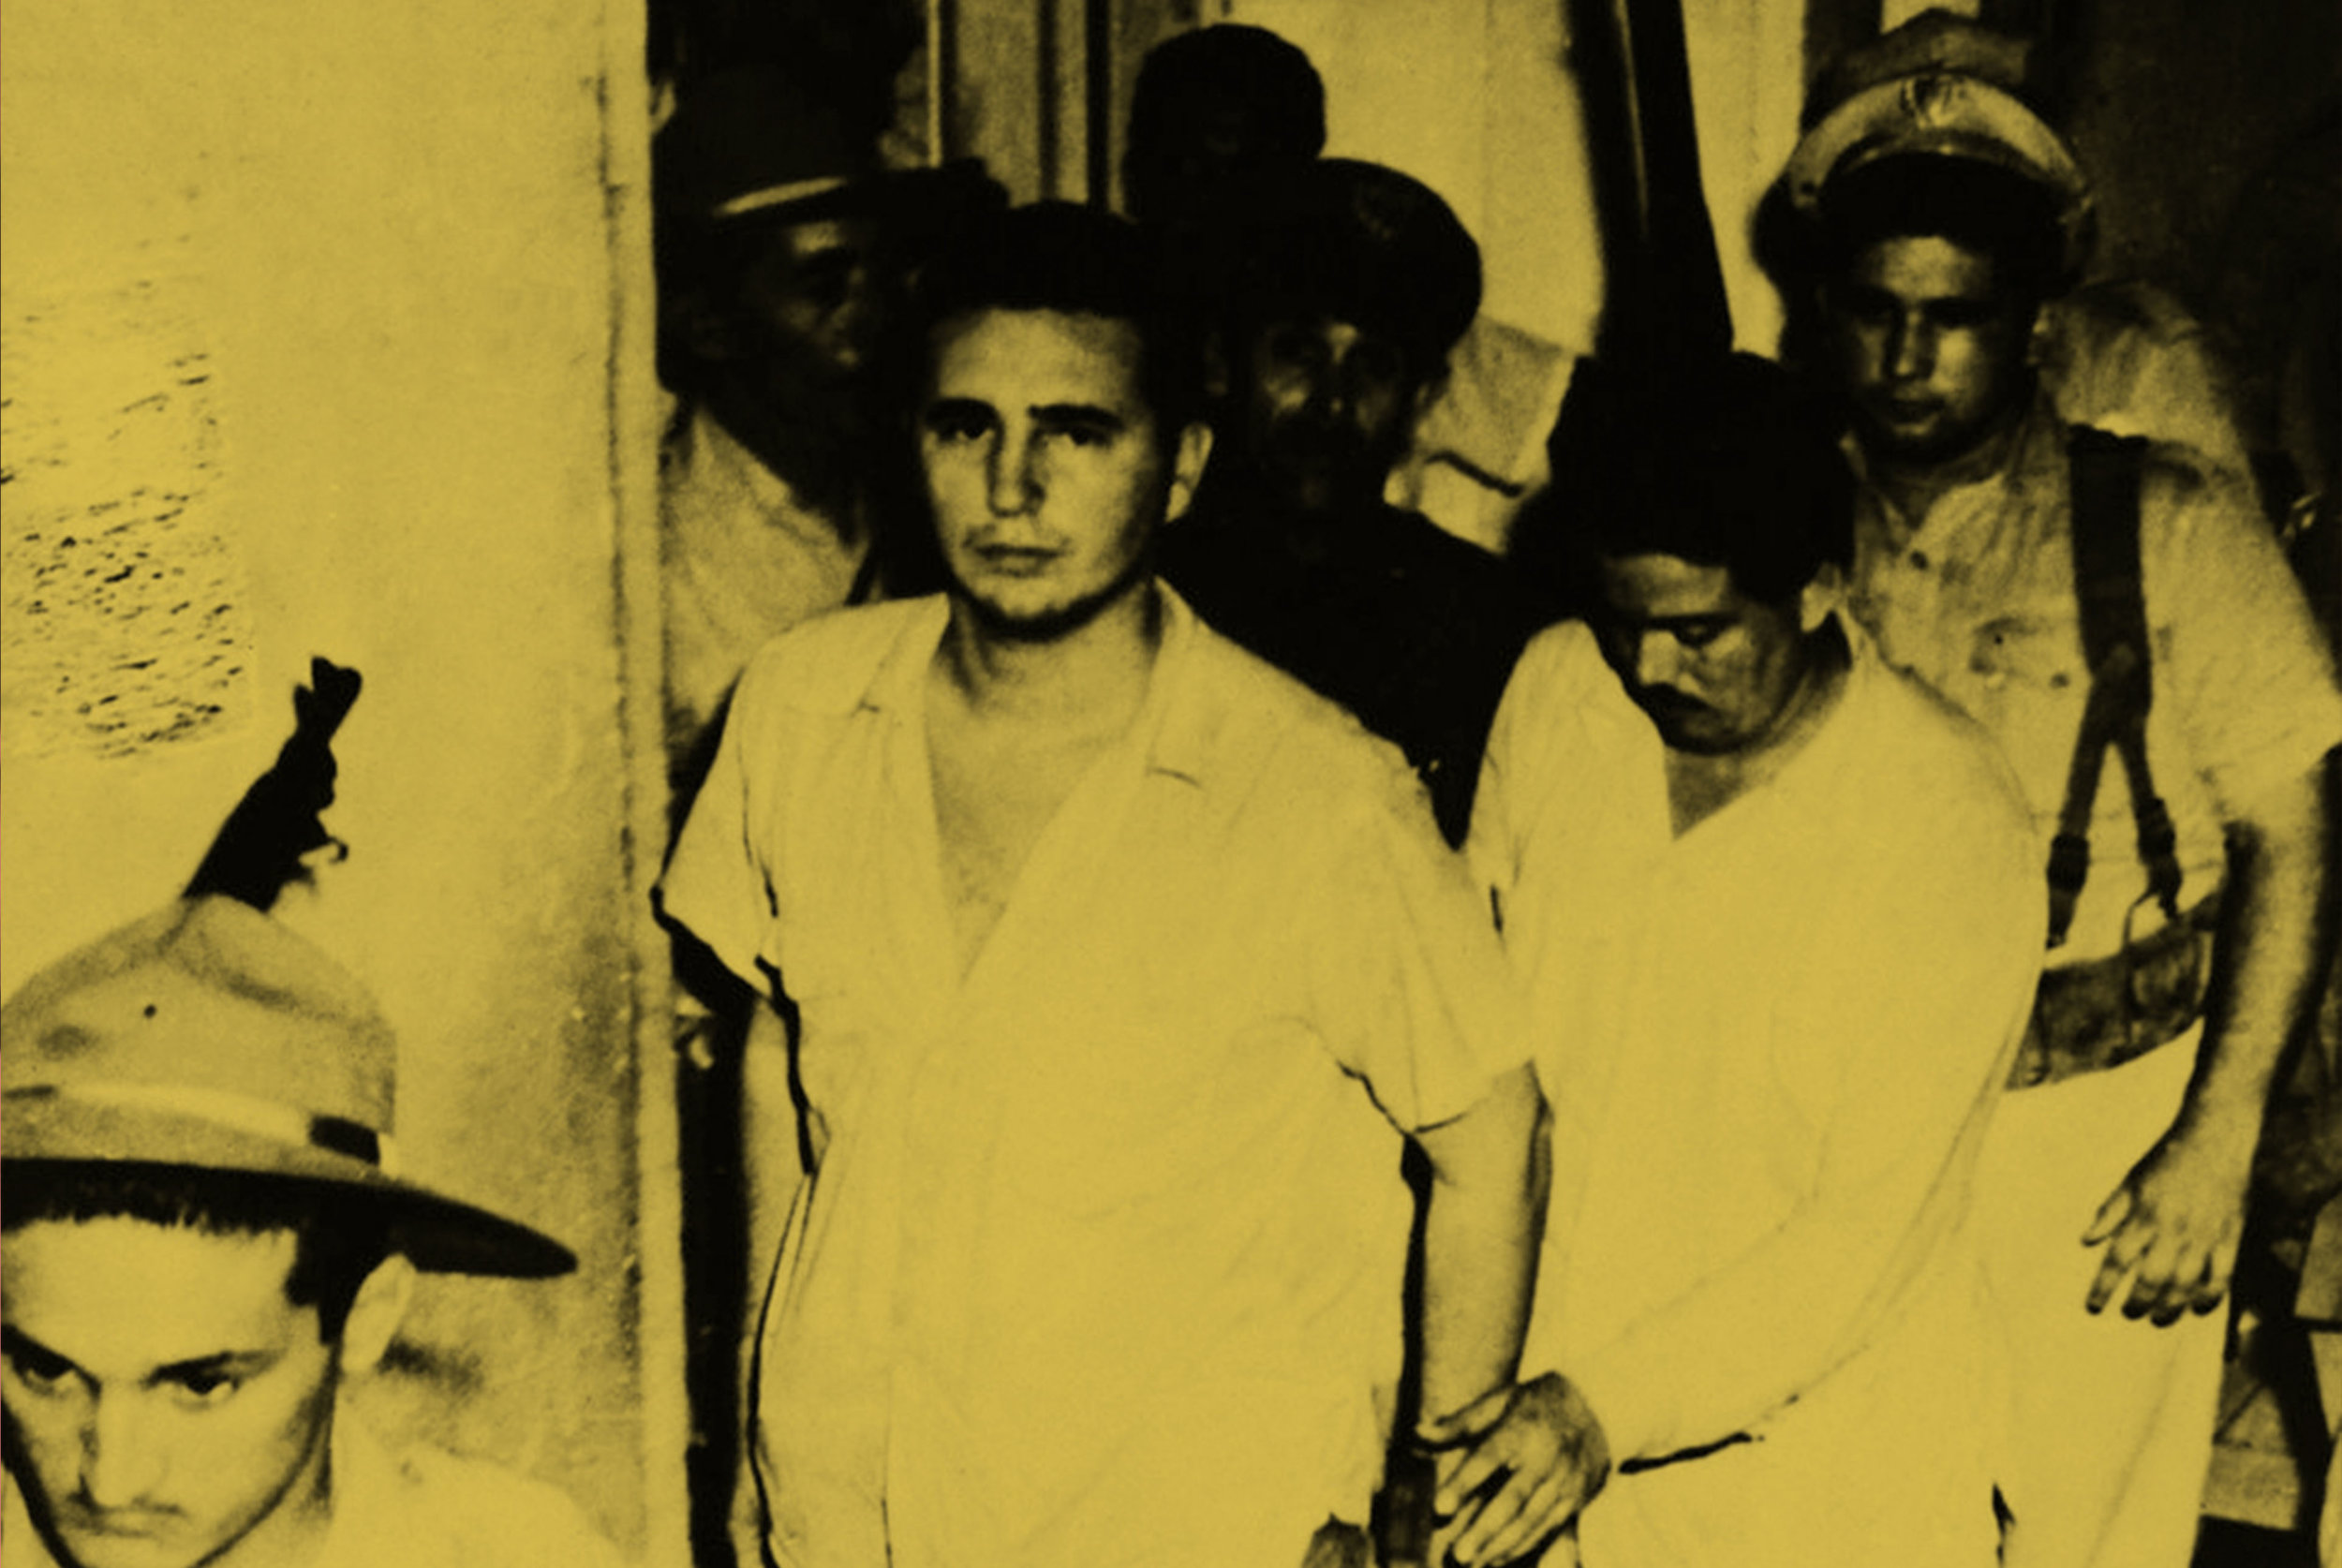 READ 'HISTORY WILL ABSOLVE ME'  The speech given by Fidel Castro in his own defence in court in 1953